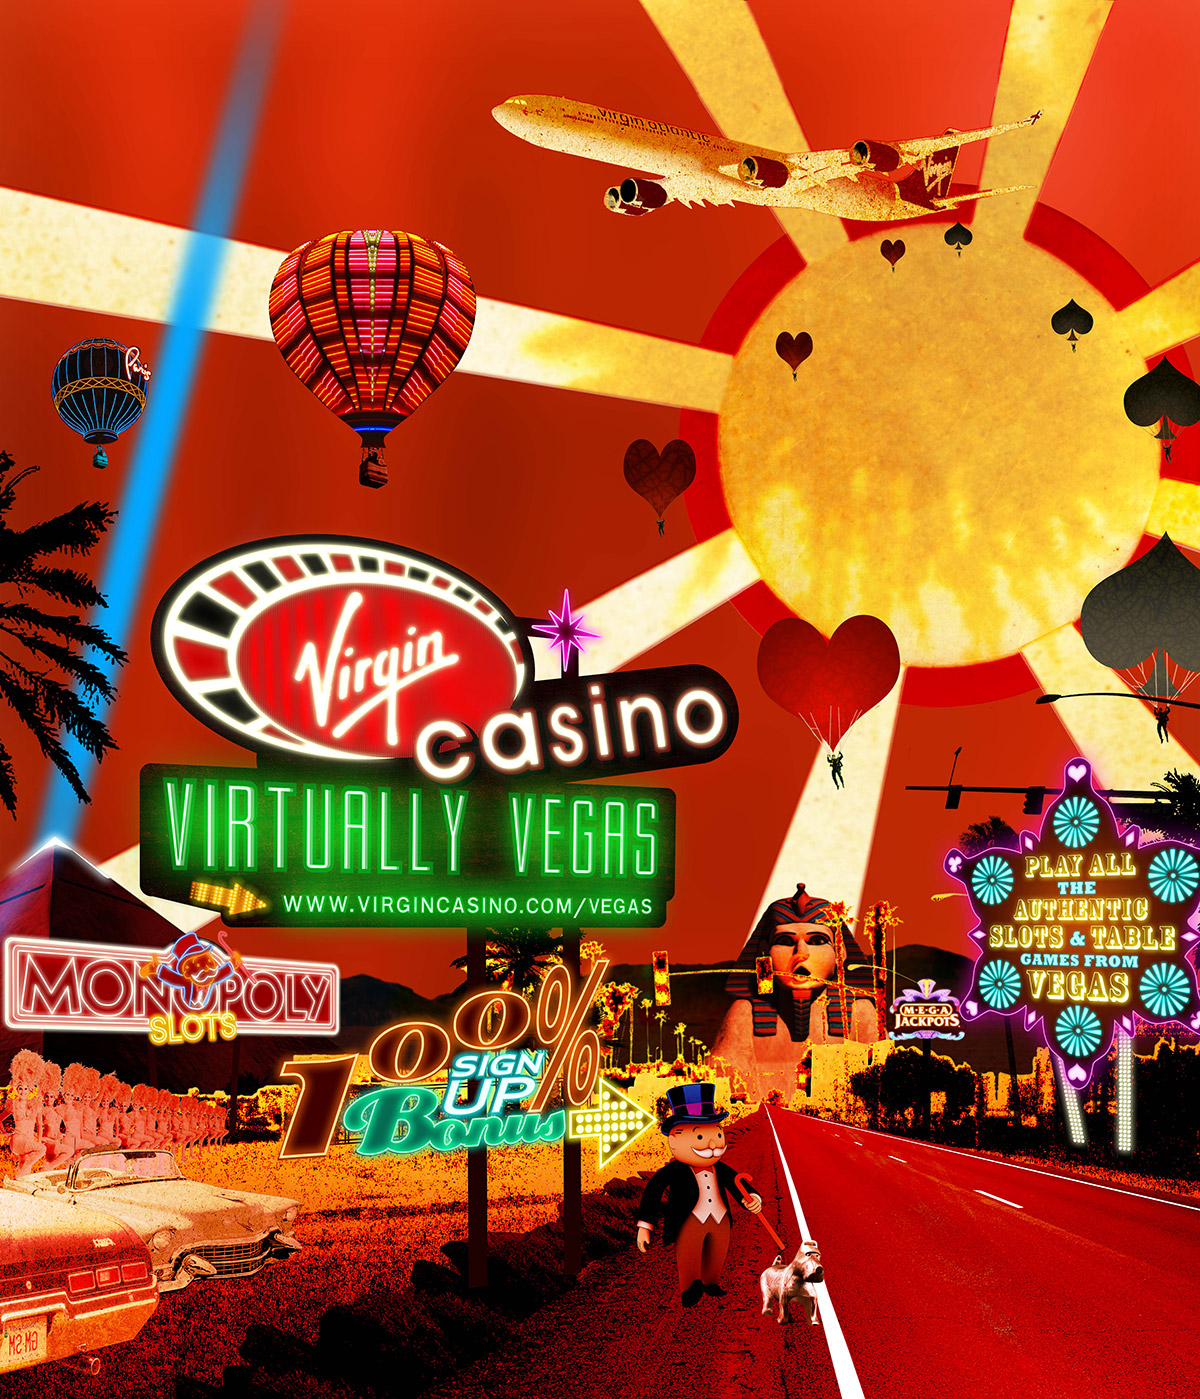 Virgin Casino - Virtually Vegas poster